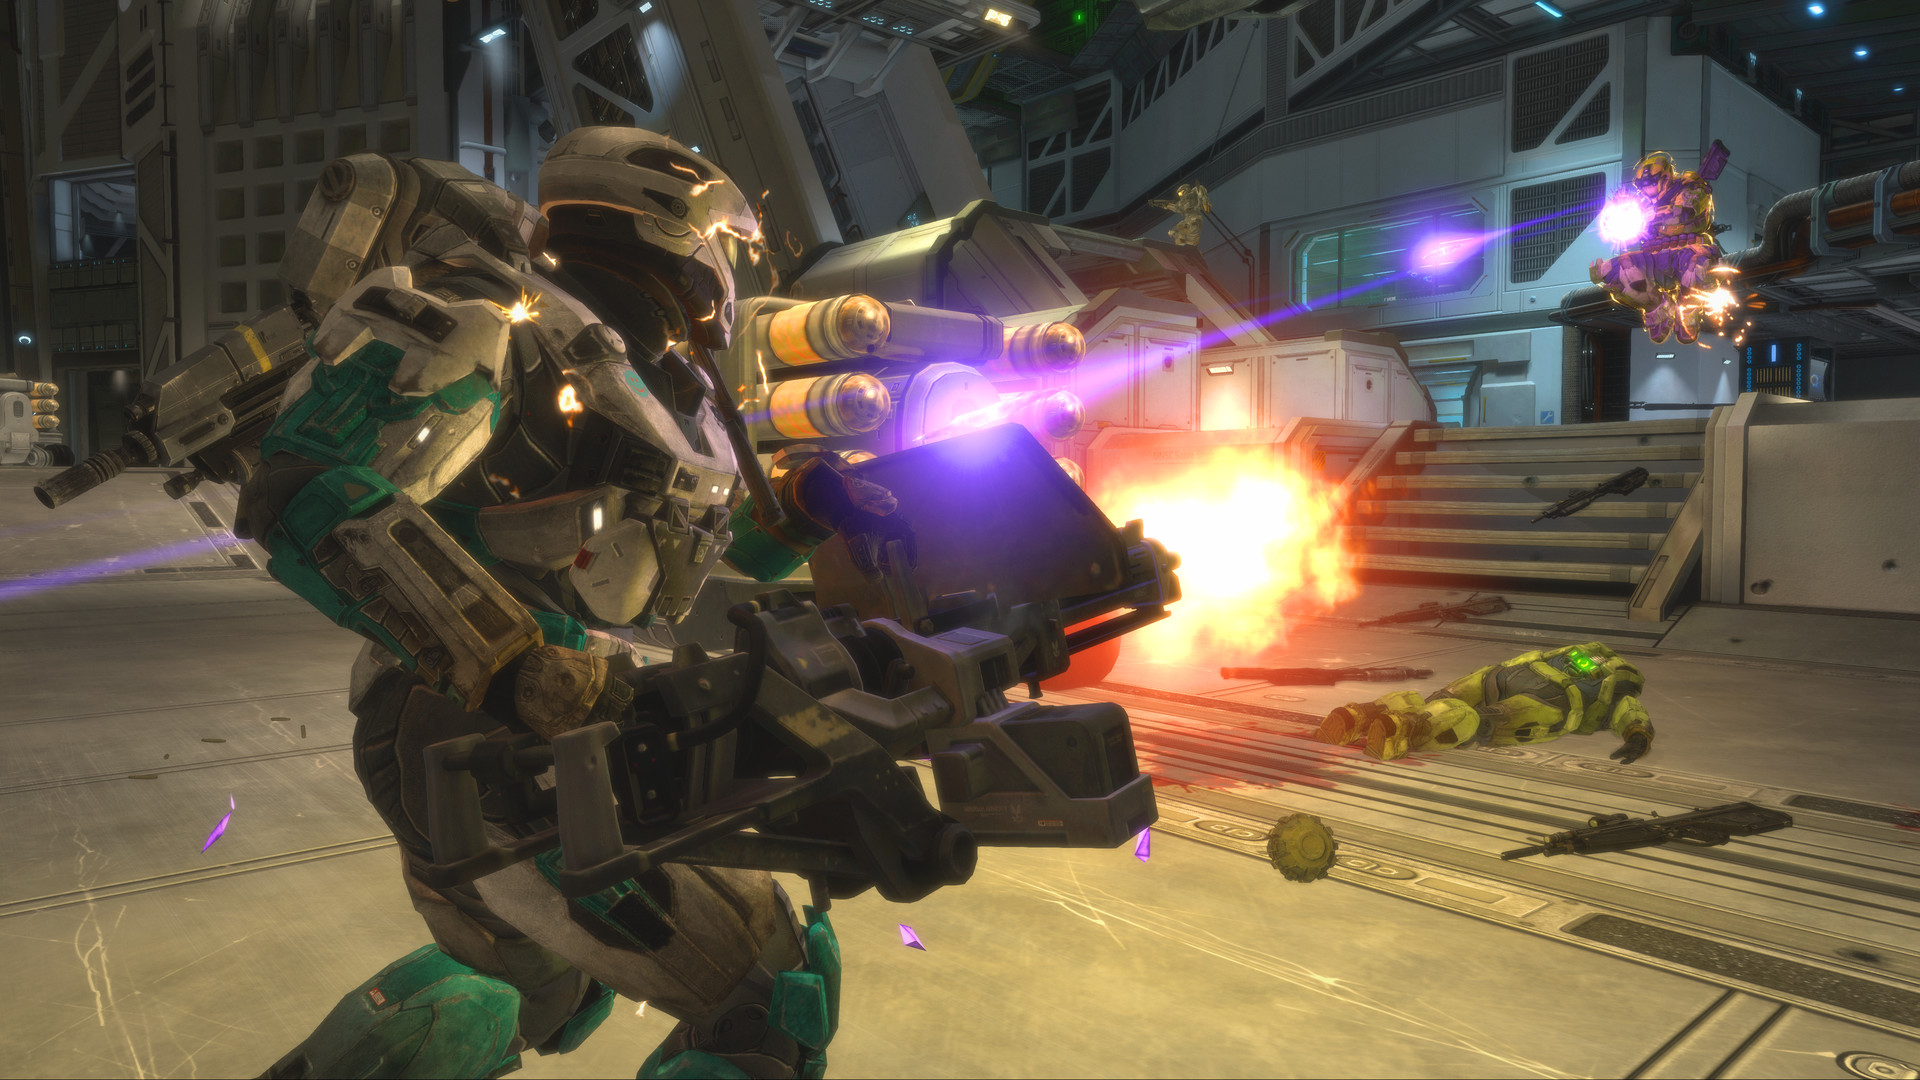 Halo Mcc Is Now The Best Selling Game On Steam Techradar